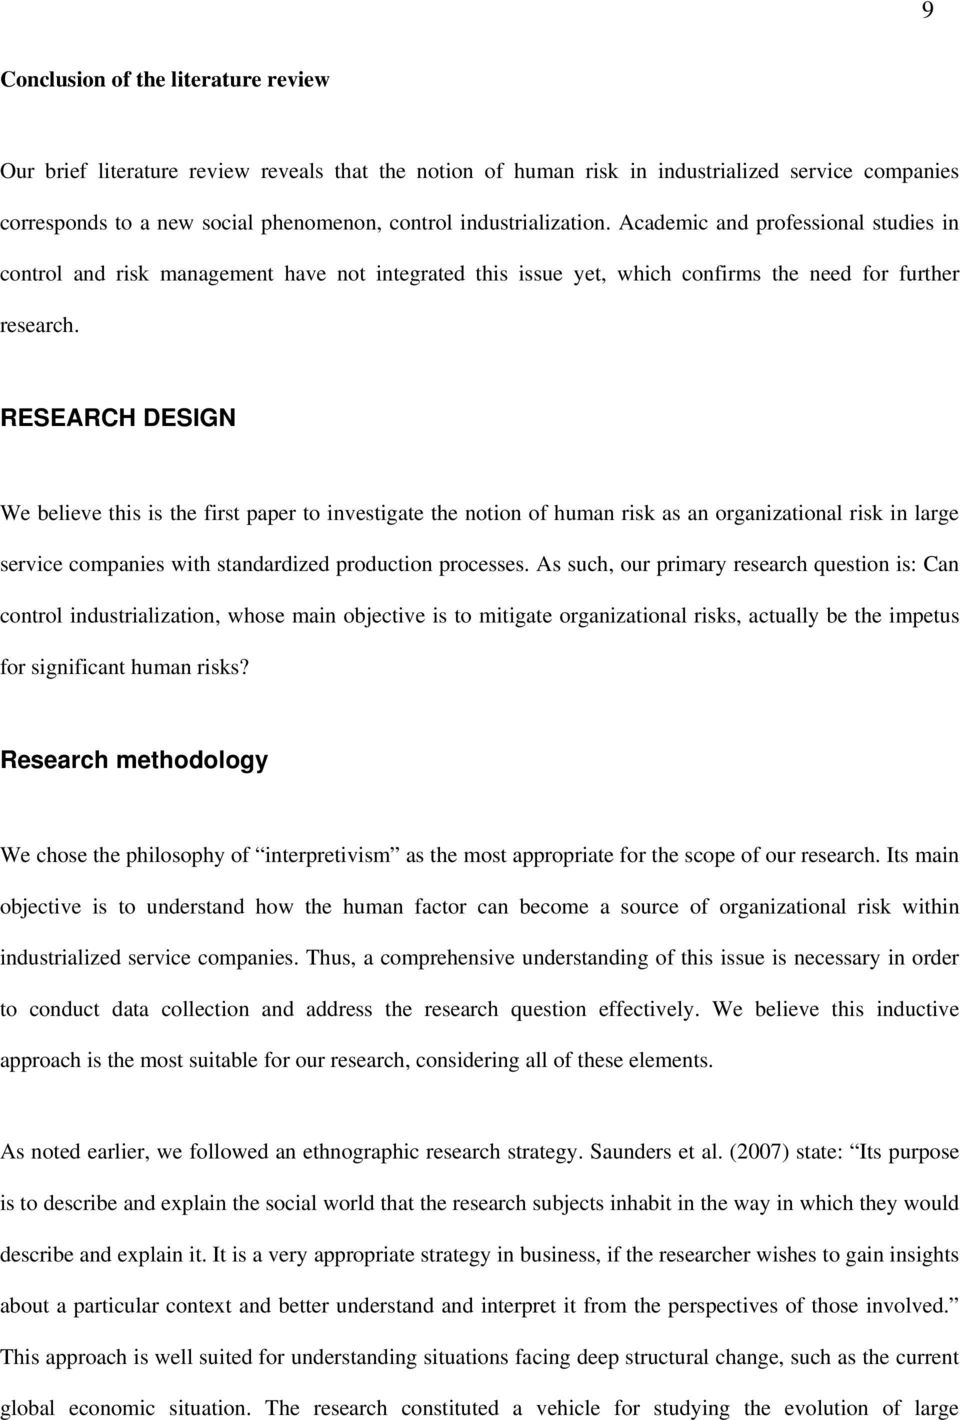 RESEARCH DESIGN We believe this is the first paper to investigate the notion of human risk as an organizational risk in large service companies with standardized production processes.